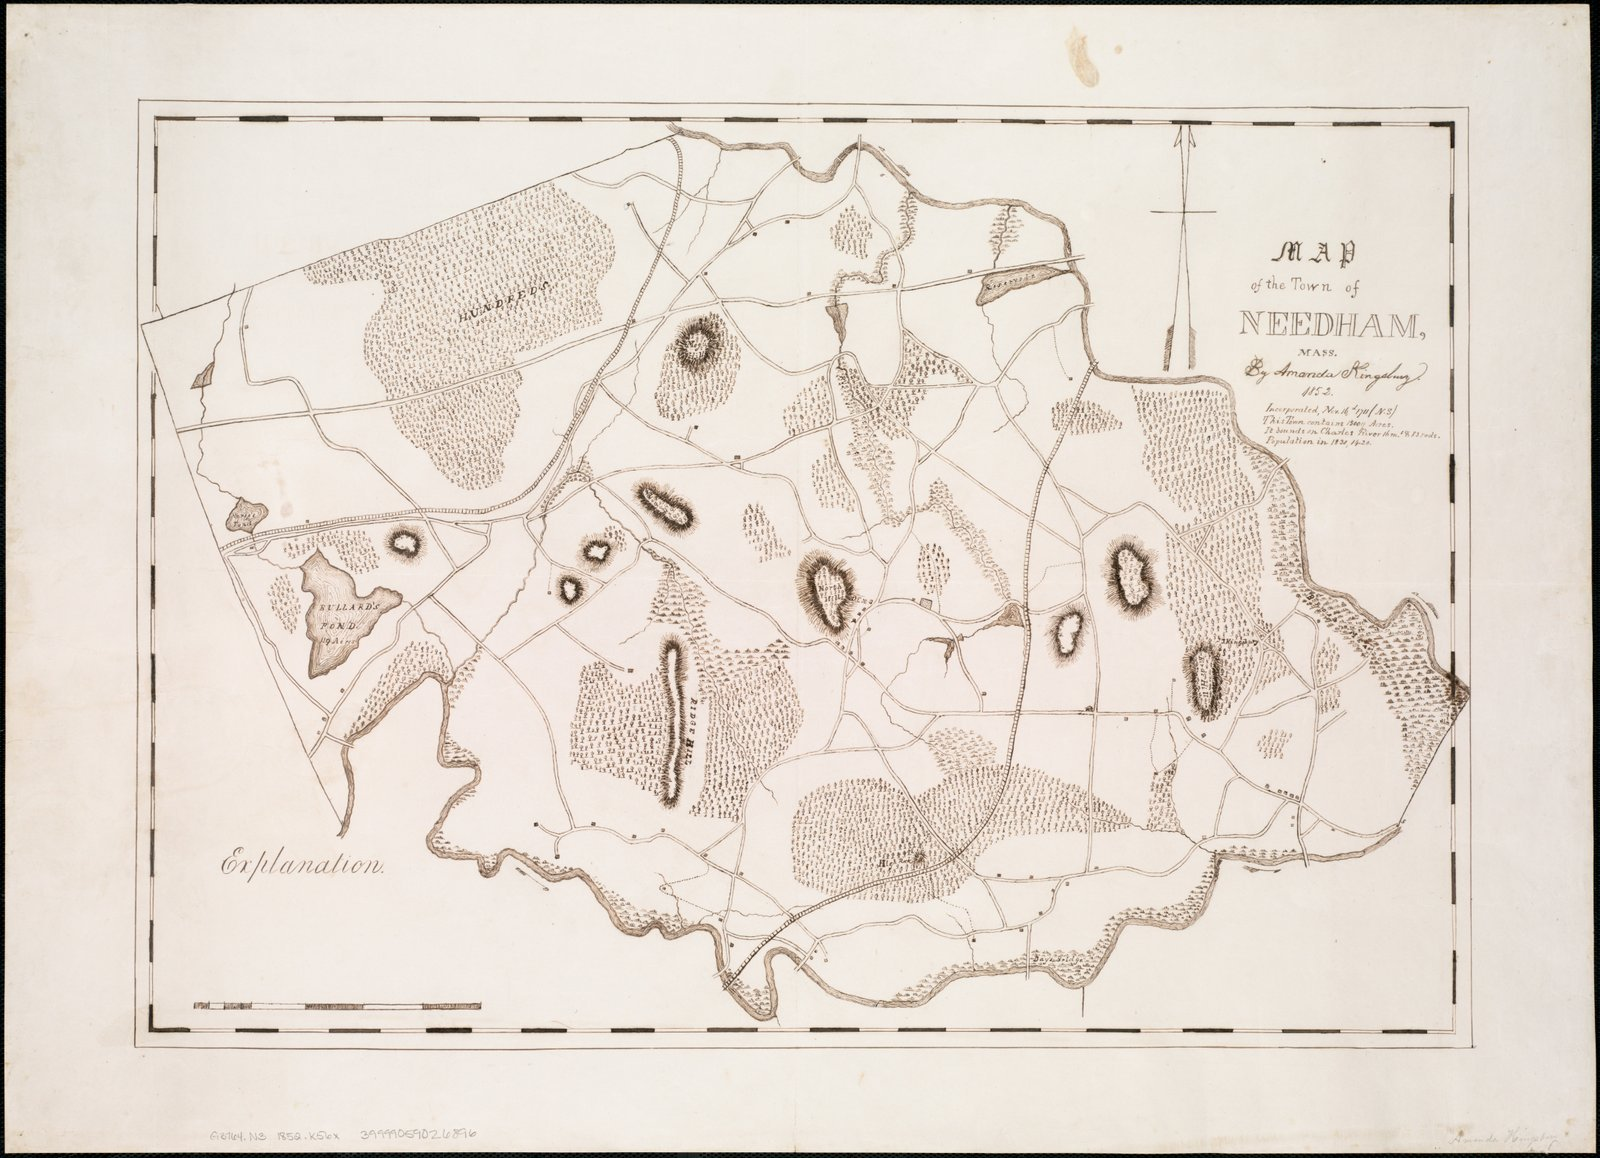 Historic Map | 1852 Map of the town of Needham, Mass | Antique Vintage Reproduction